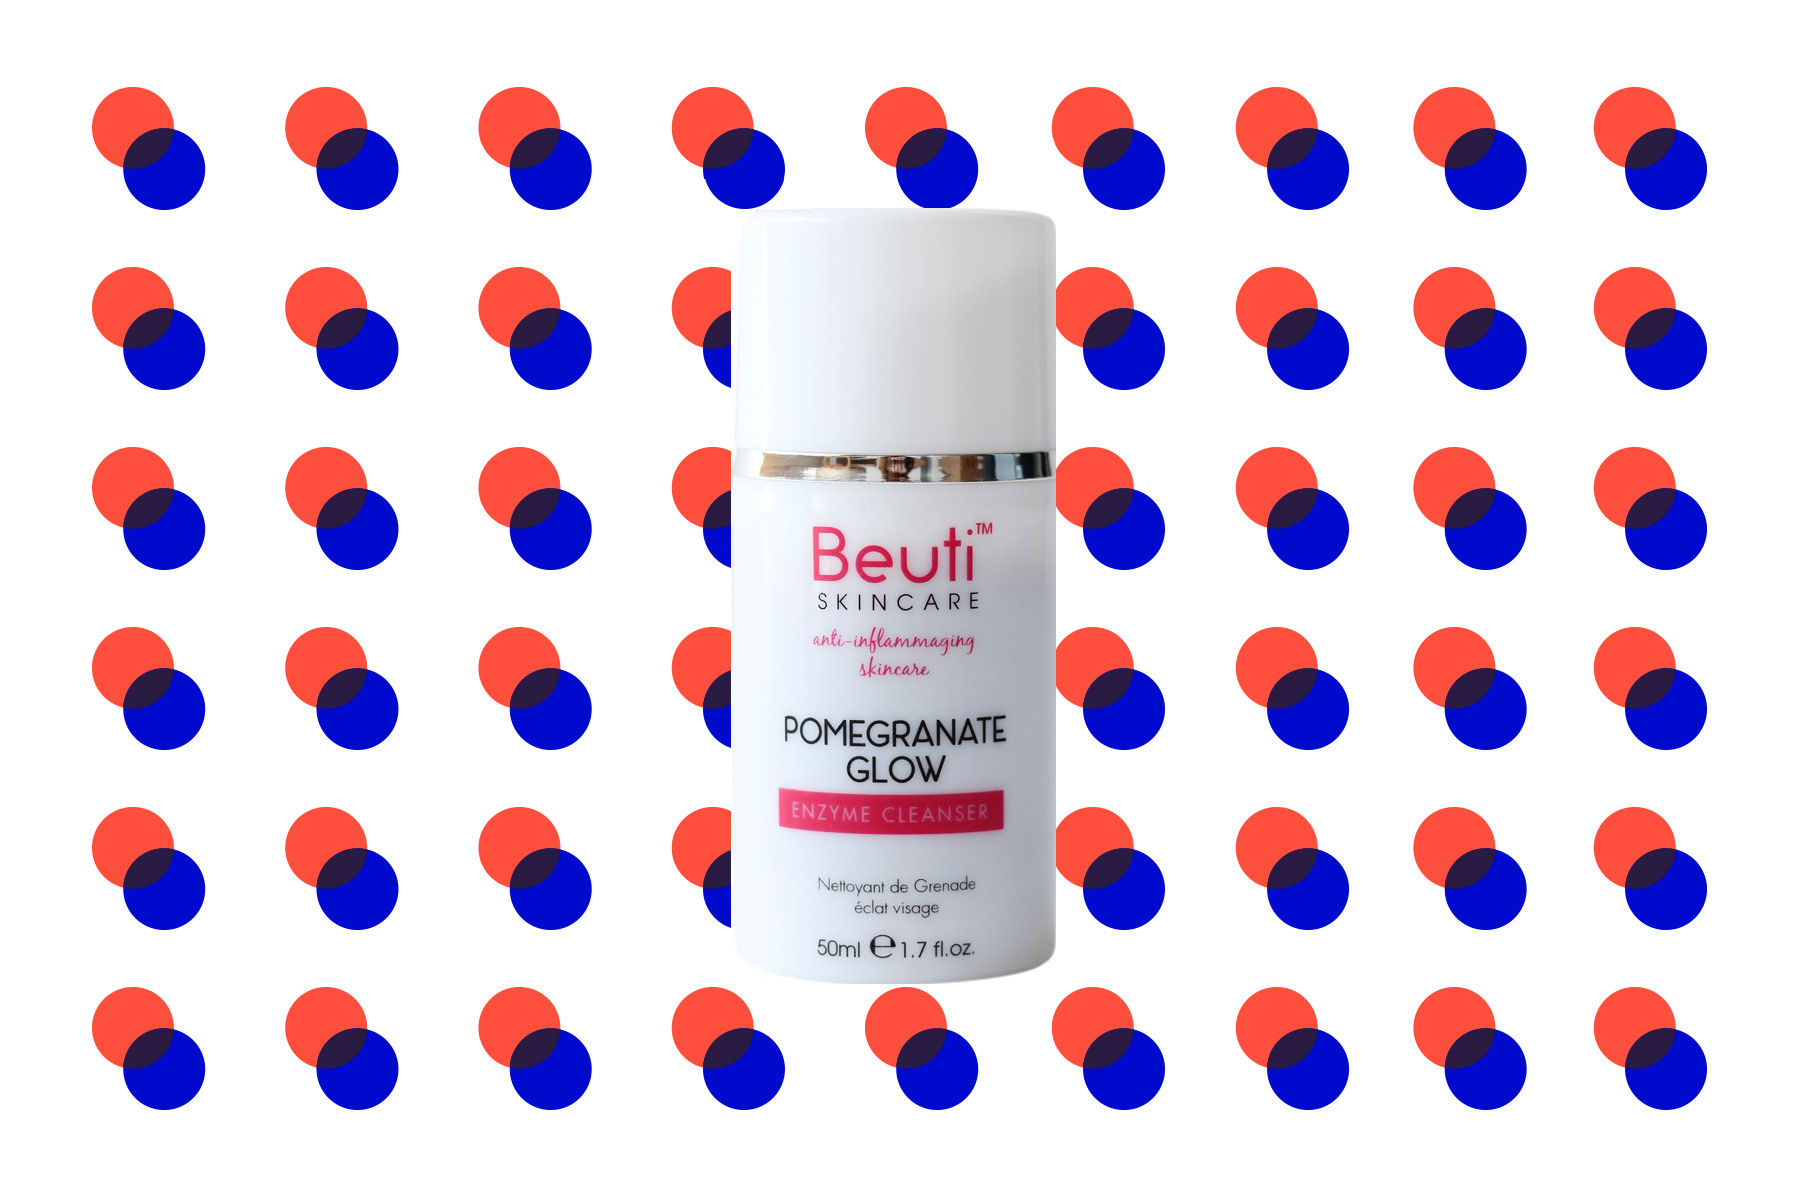 Beuti Skincare Pomegranate Glow Enzyme Cleanser